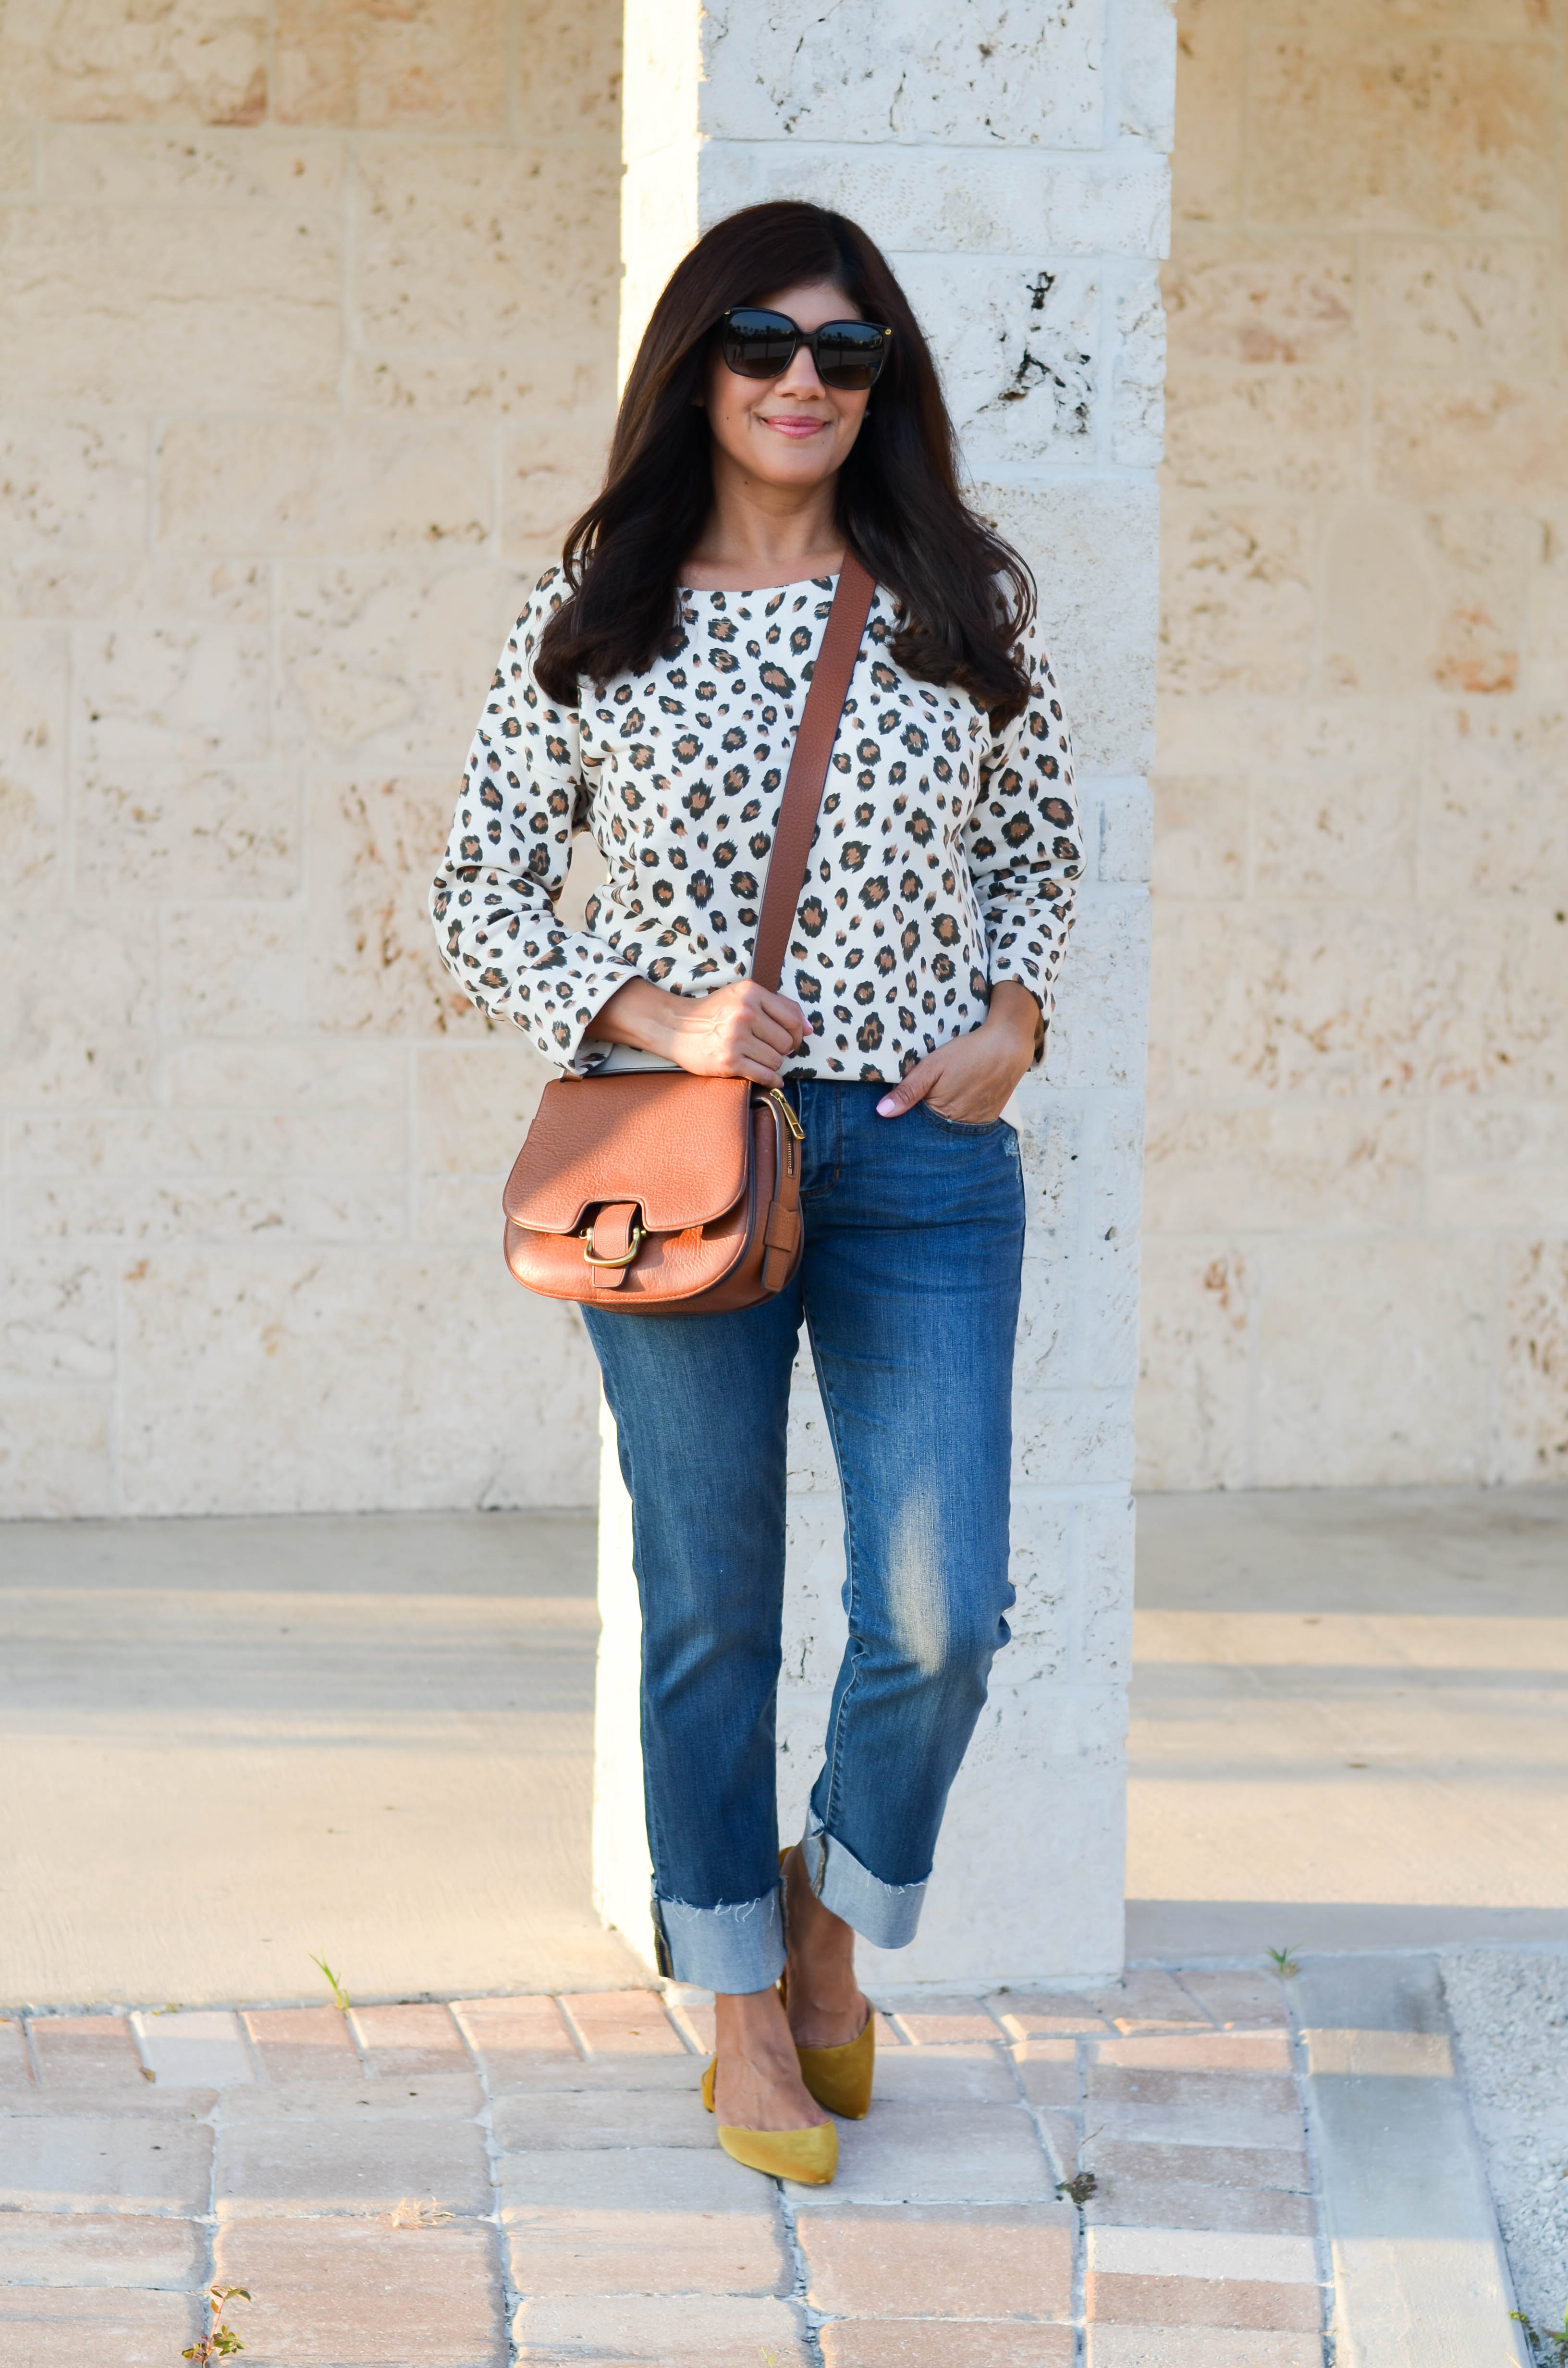 Lifestyle blogger, Desiree of Beautifully Seaside, styles a comfy fall leopard sweatshirt from J.Crew.